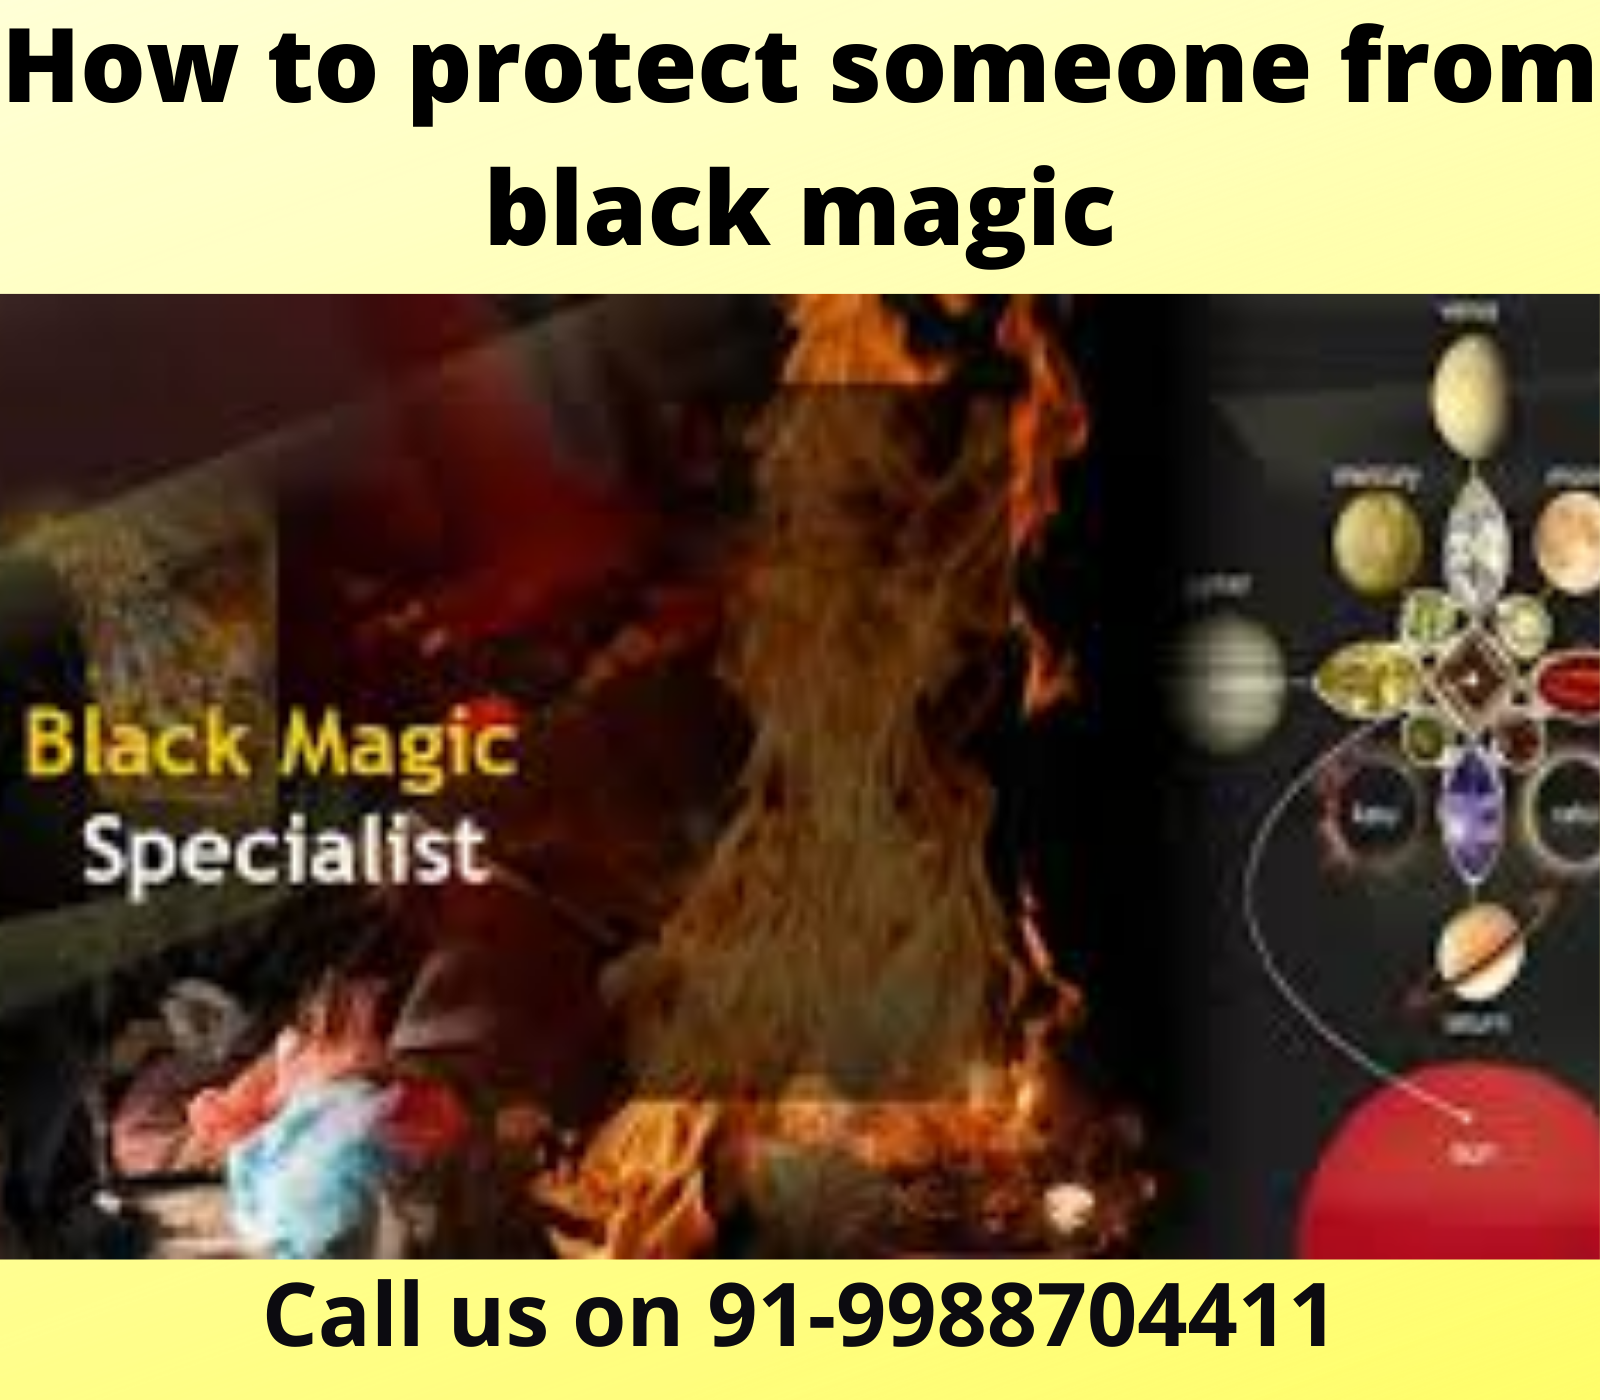 How to protect someone from black magic